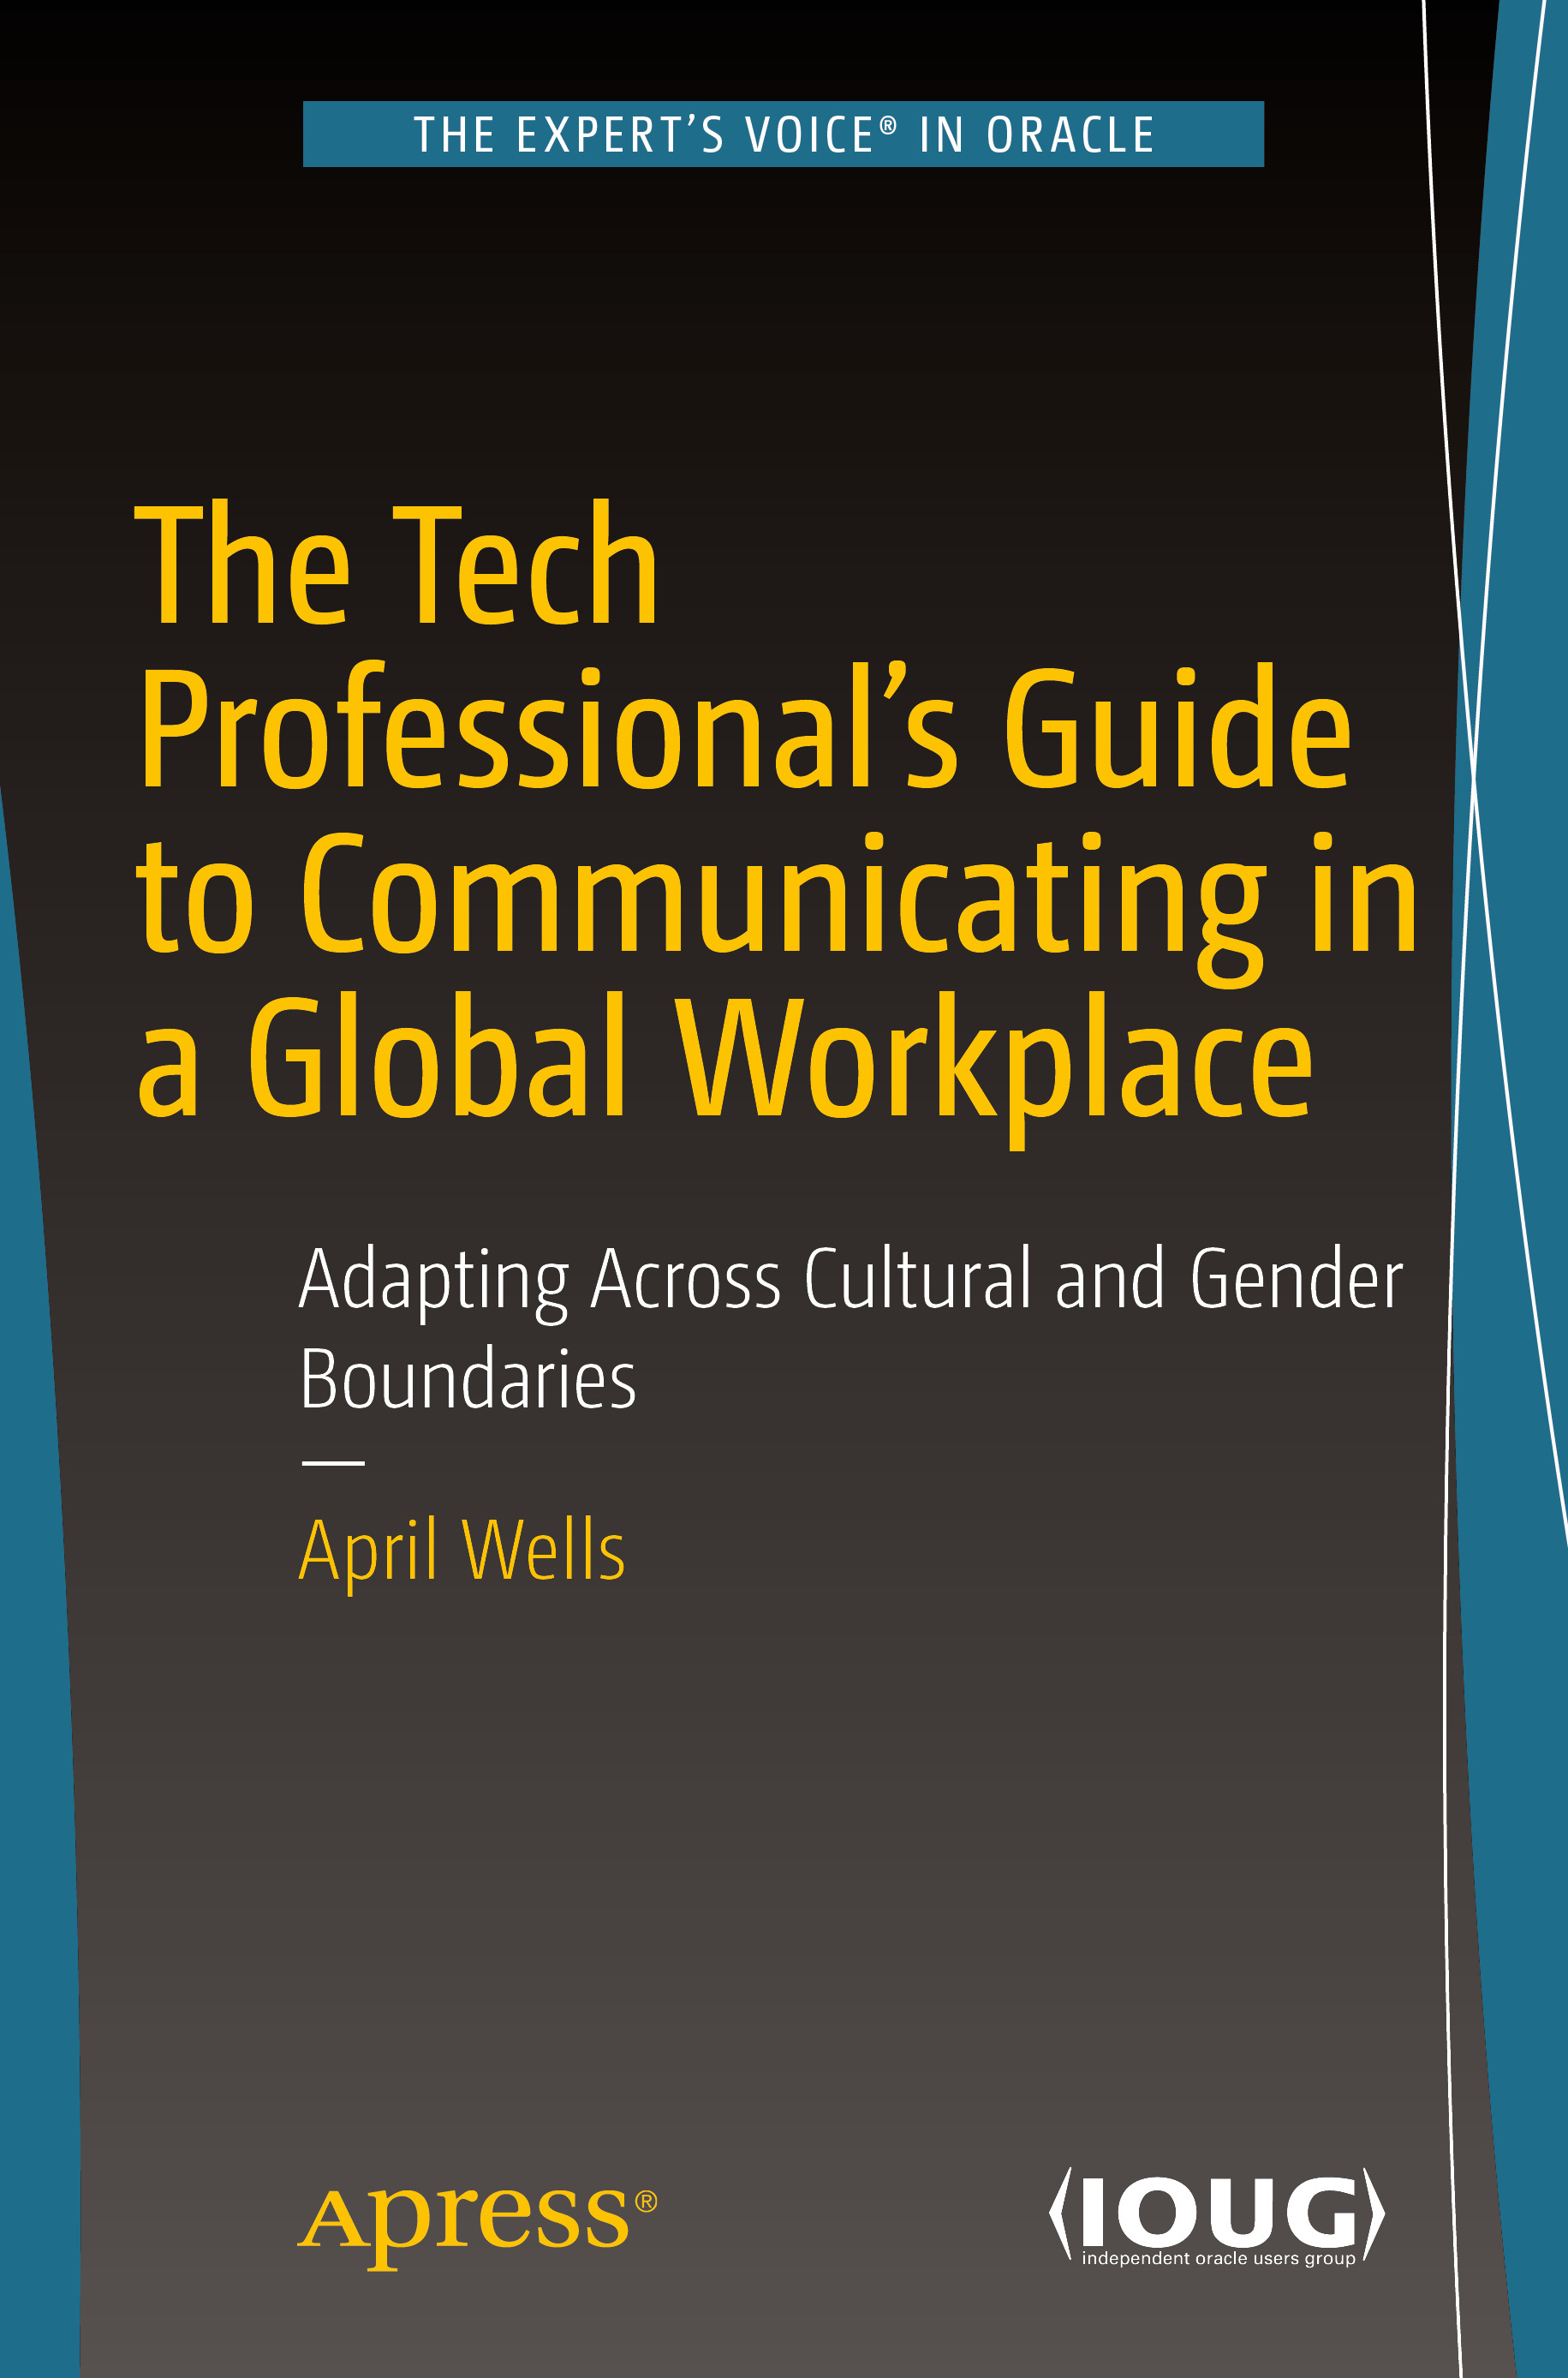 gender communication in a global workplace training Present the gender communication in a global workplace training presentation: • for local campus students, these are 20-minute oral presentations accompanied by a multimedia or video presentation.